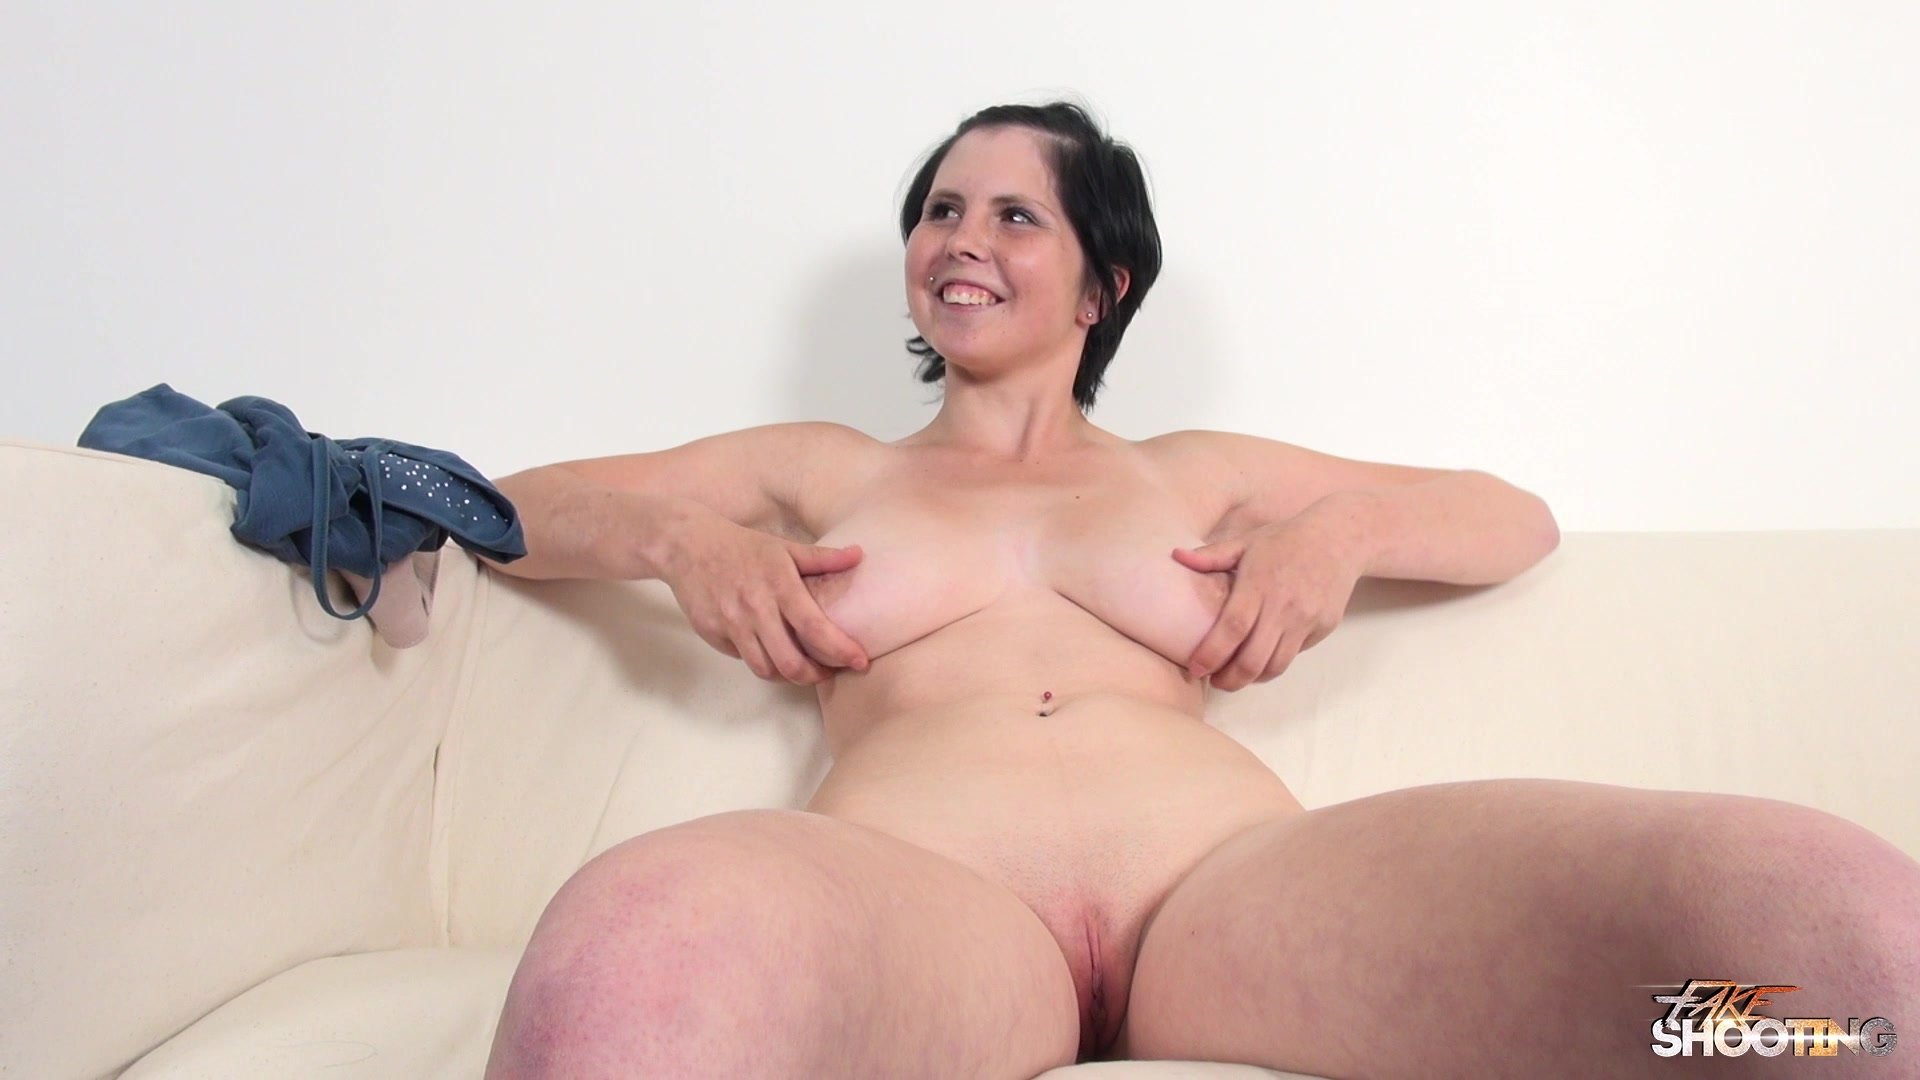 Teen for porn casting amiture — photo 2